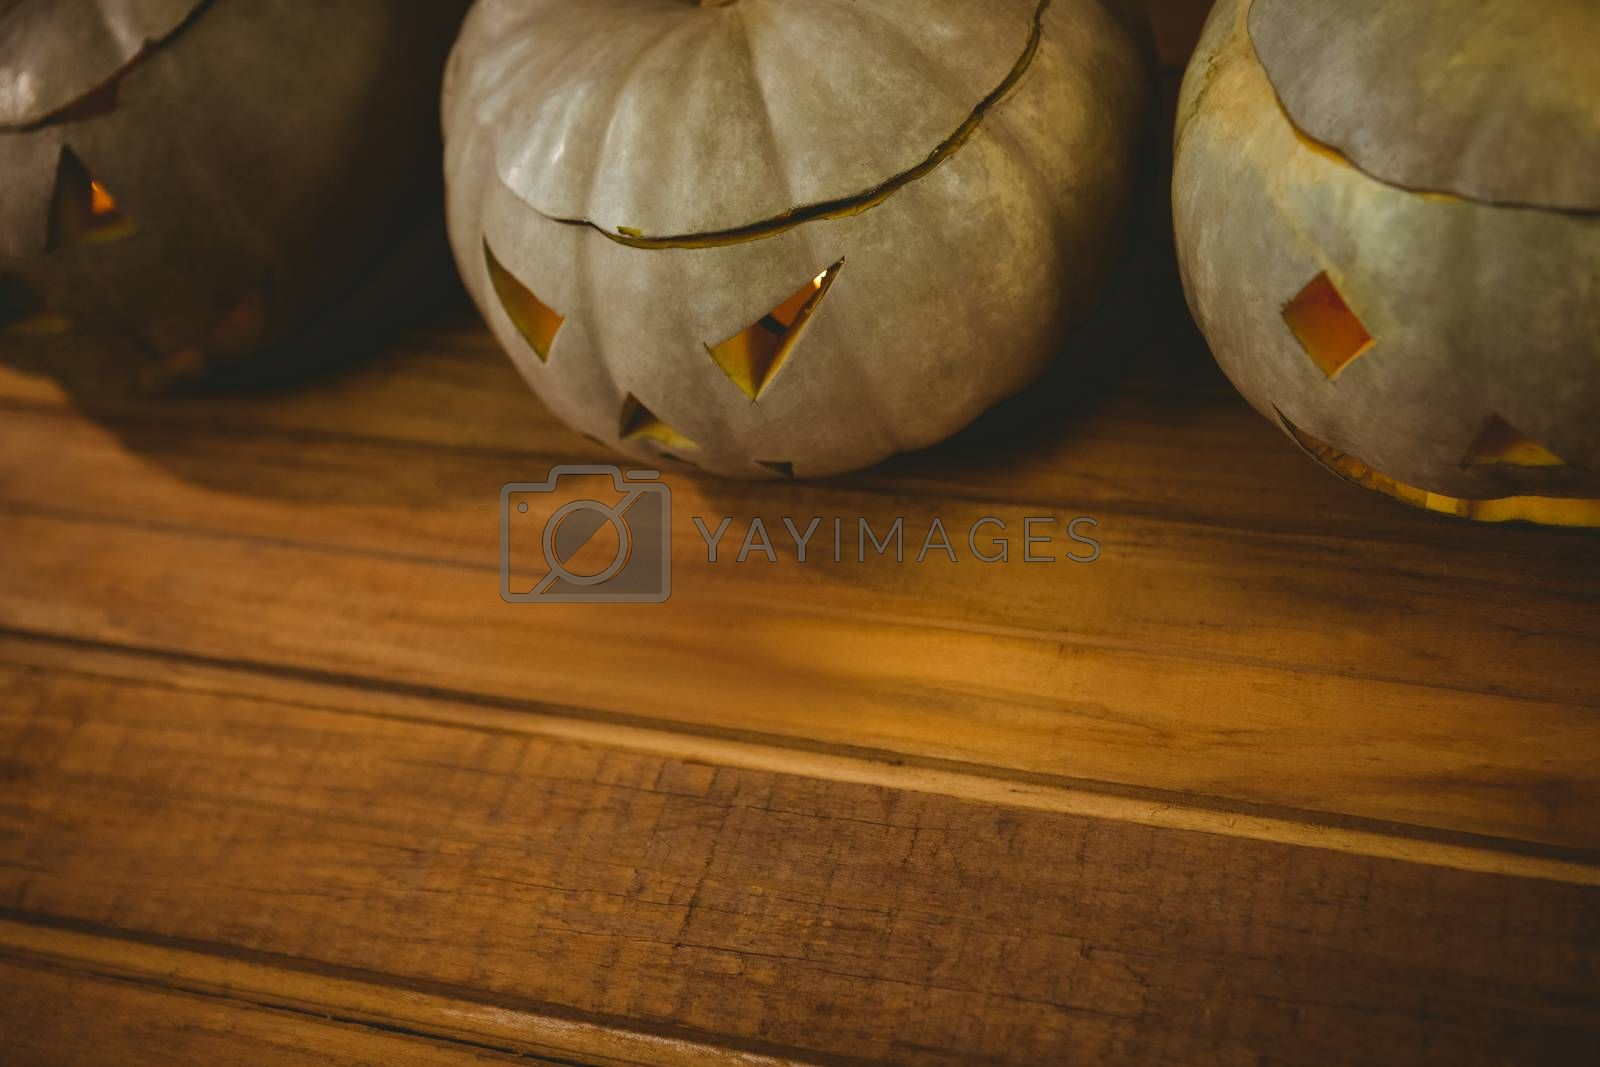 High angle view of jack o lanterns arranged on table during Halloween